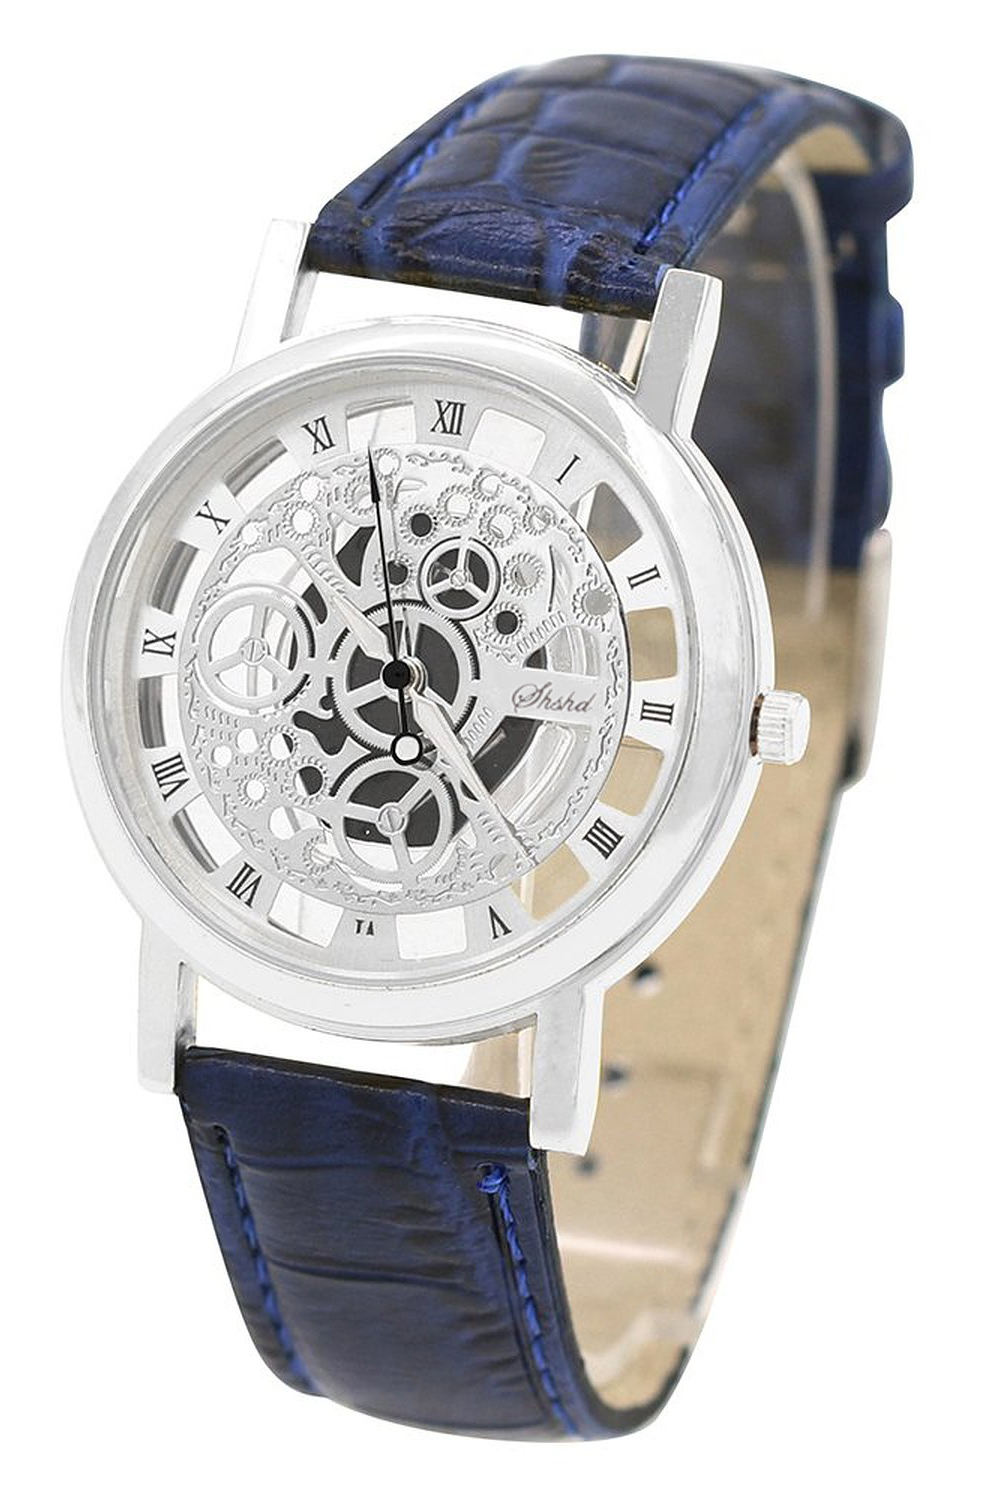 YCYS!(Blue Strap & Silver Dial) Mens Faux Leather Band Wrist Skeleton WatchYCYS!(Blue Strap & Silver Dial) Mens Faux Leather Band Wrist Skeleton Watch